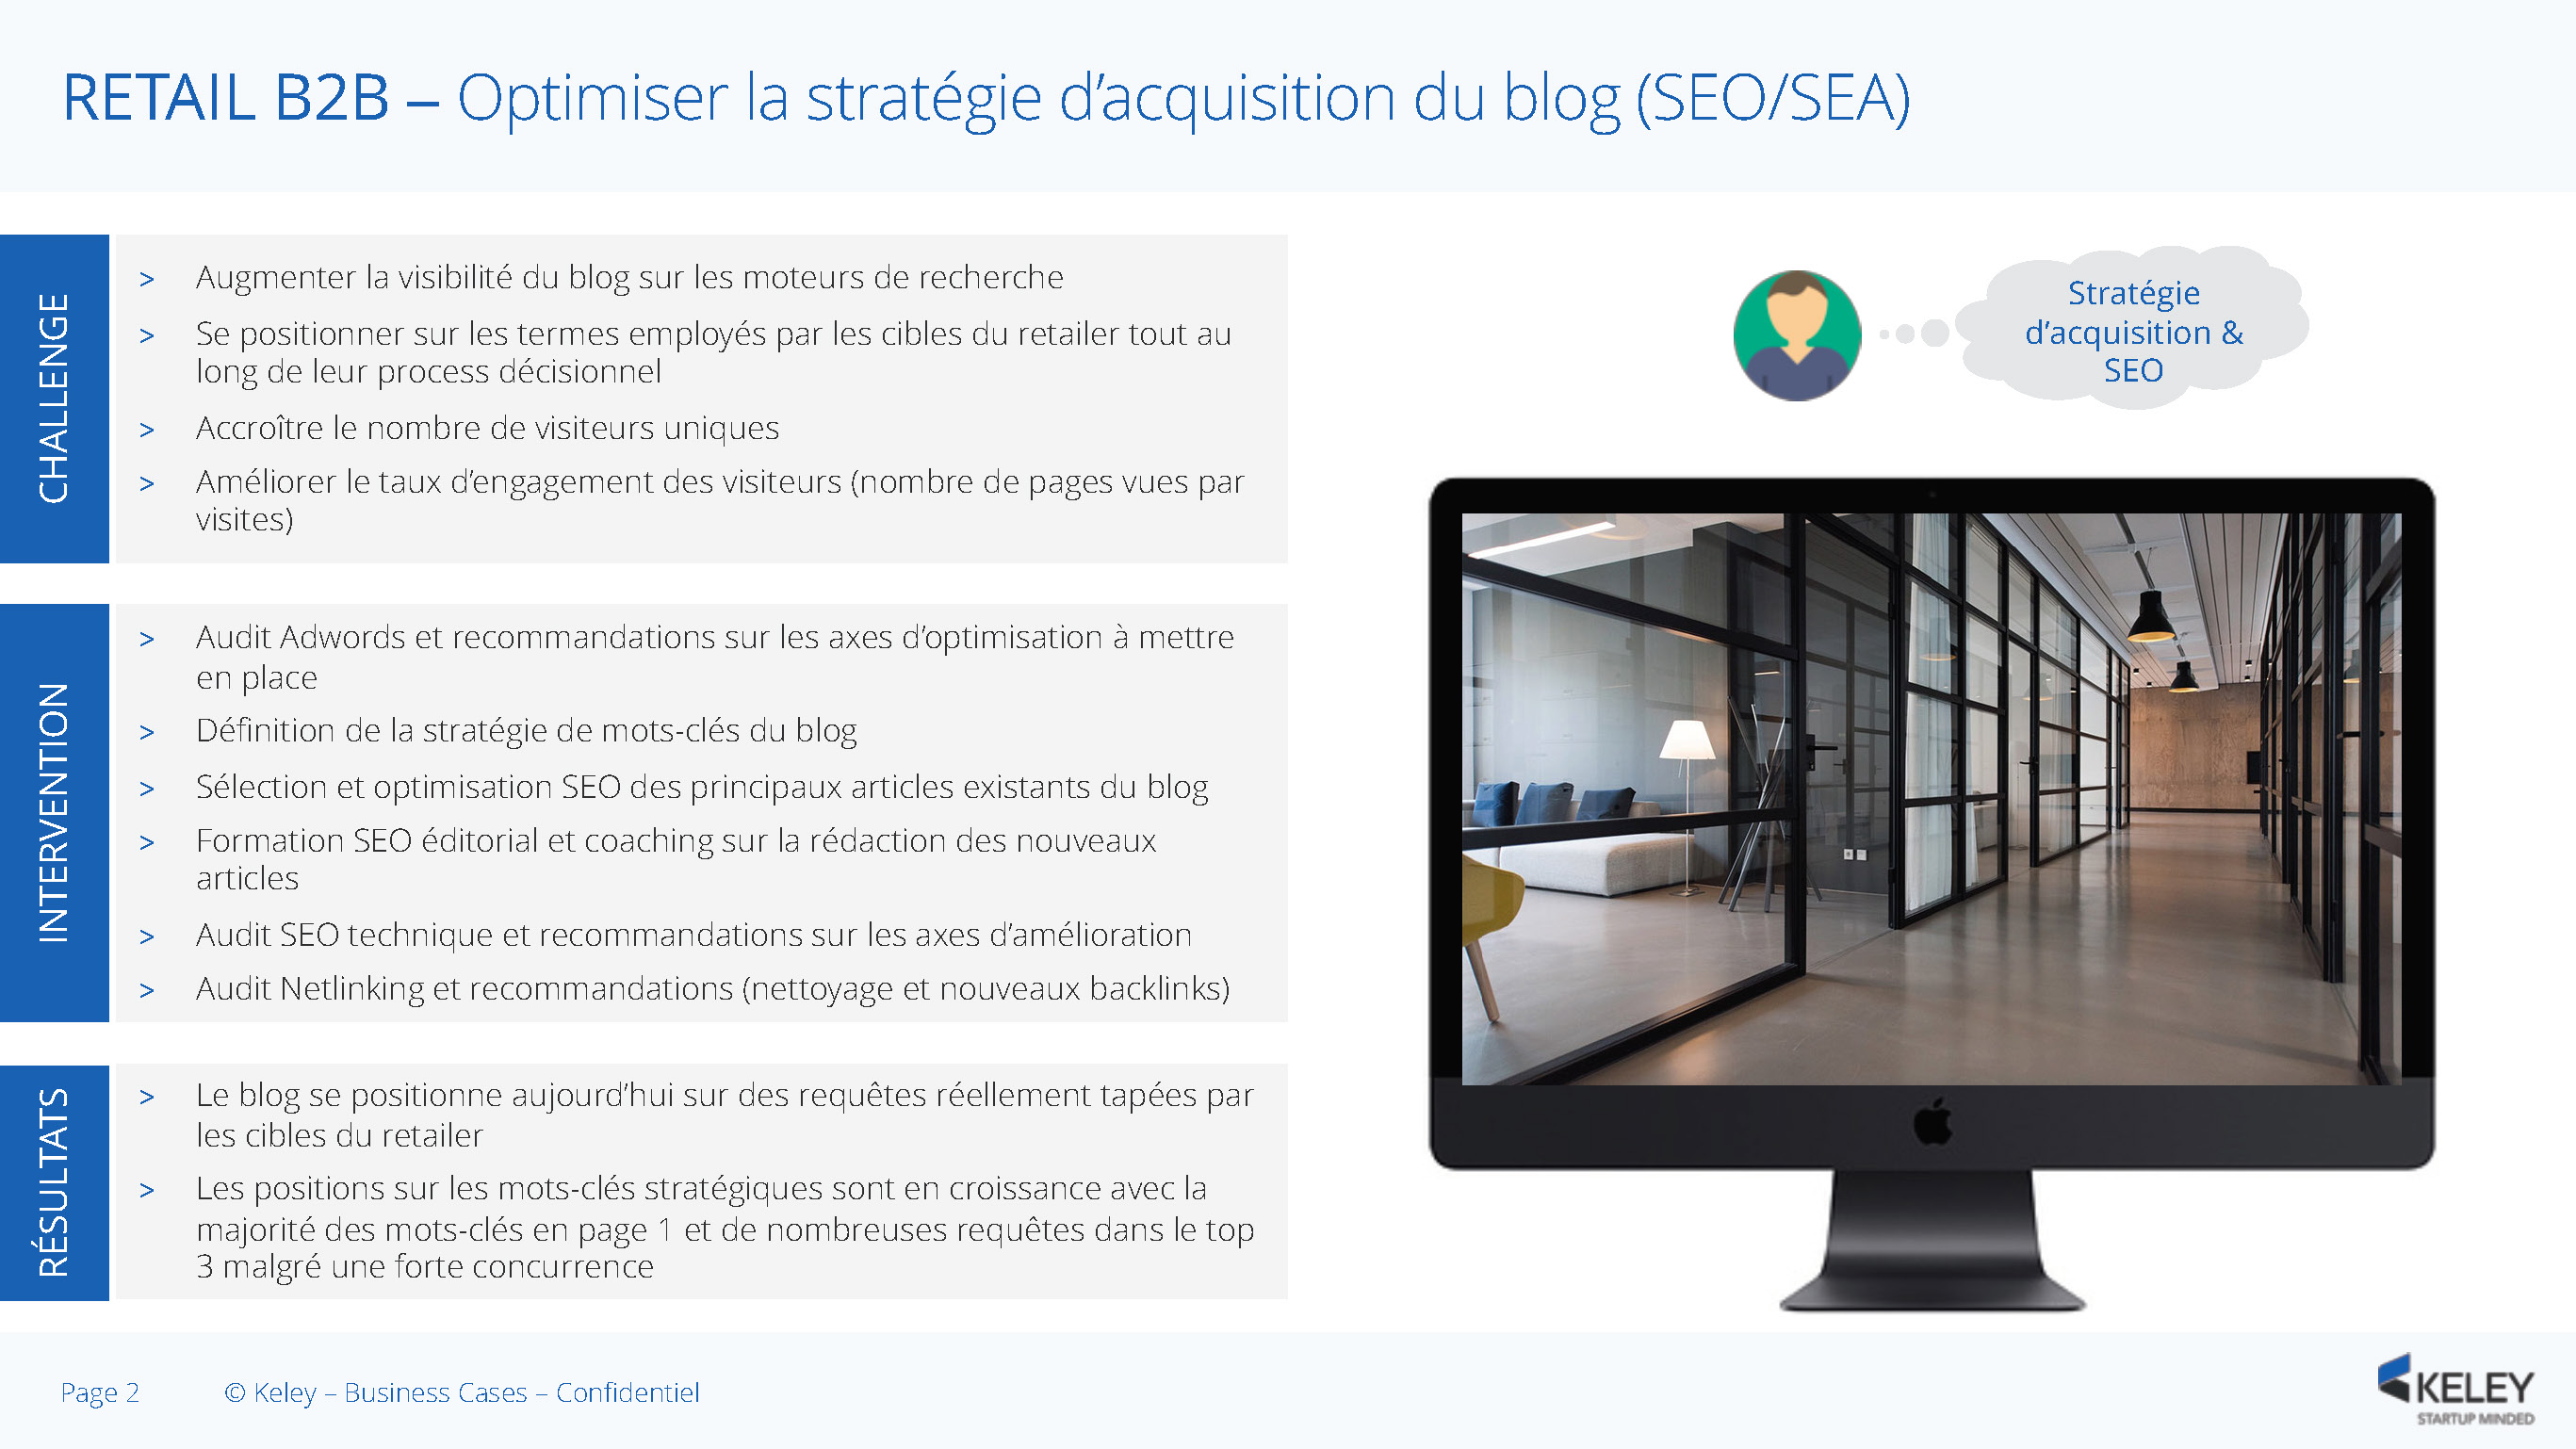 Cas d'usage Retail B2B n2 : Optimiser la stratégie d'acquisition du blog (SEO/SEA)